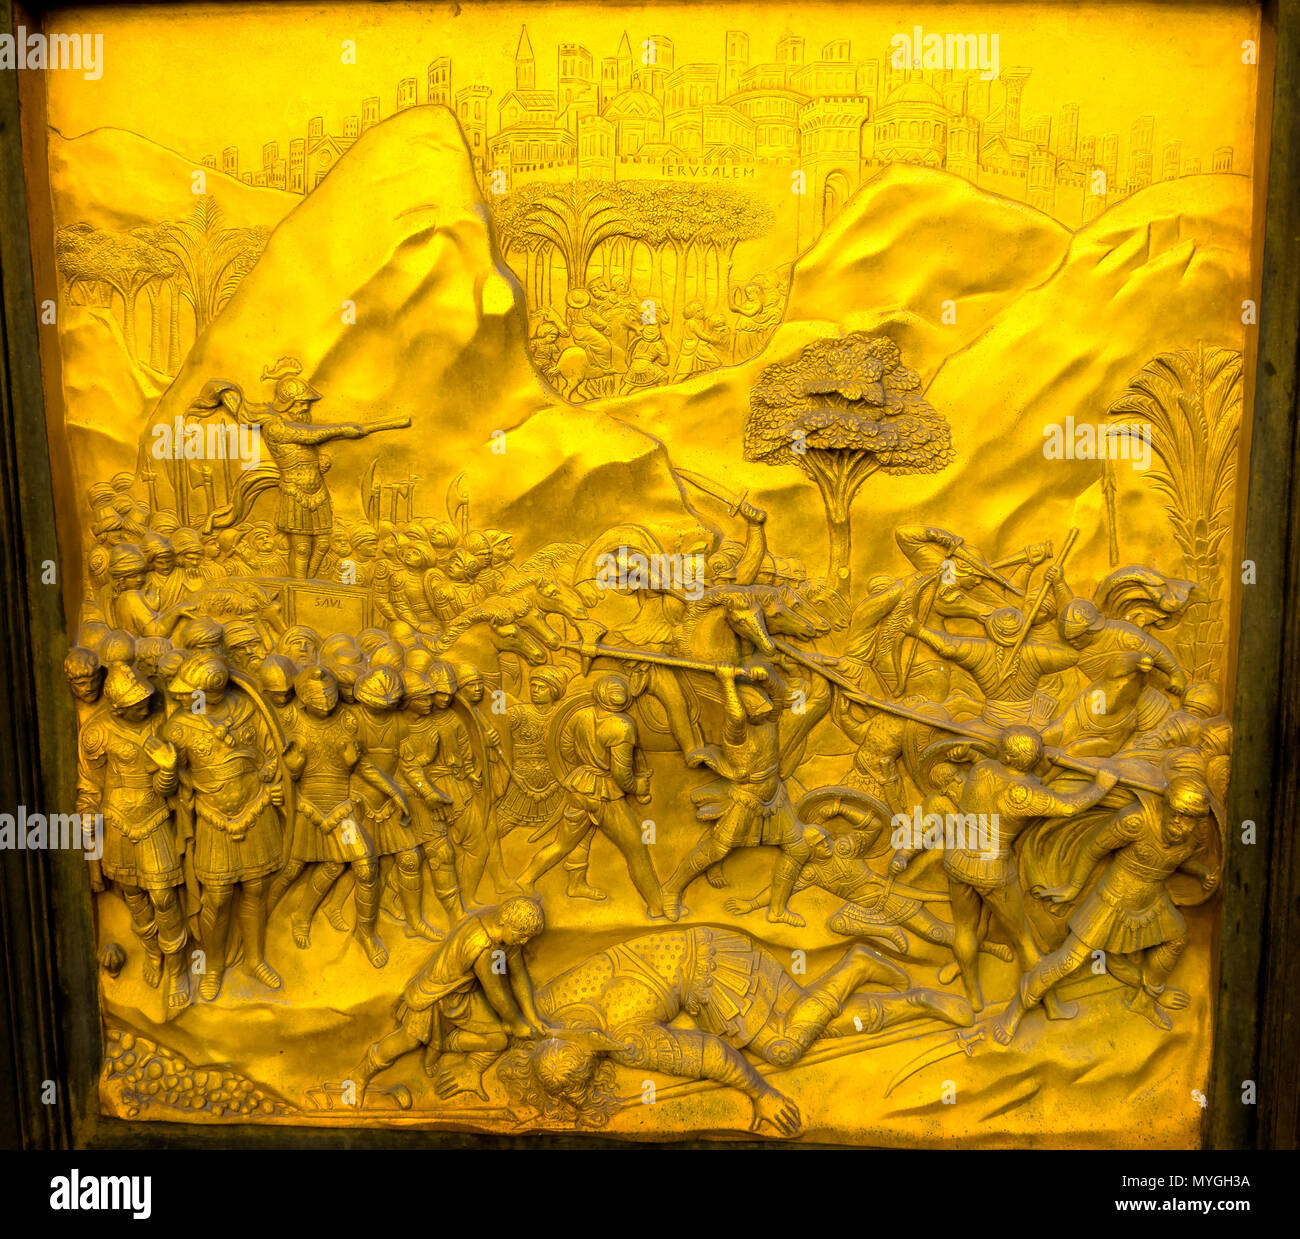 David and Goliath Gates of Paradise Ghiberti Bronze Door Bapistry Duomo Cathedral Church Florence Italy. Bapistry was created in 1100s. Bronze Doors & David and Goliath Gates of Paradise Ghiberti Bronze Door Bapistry ...